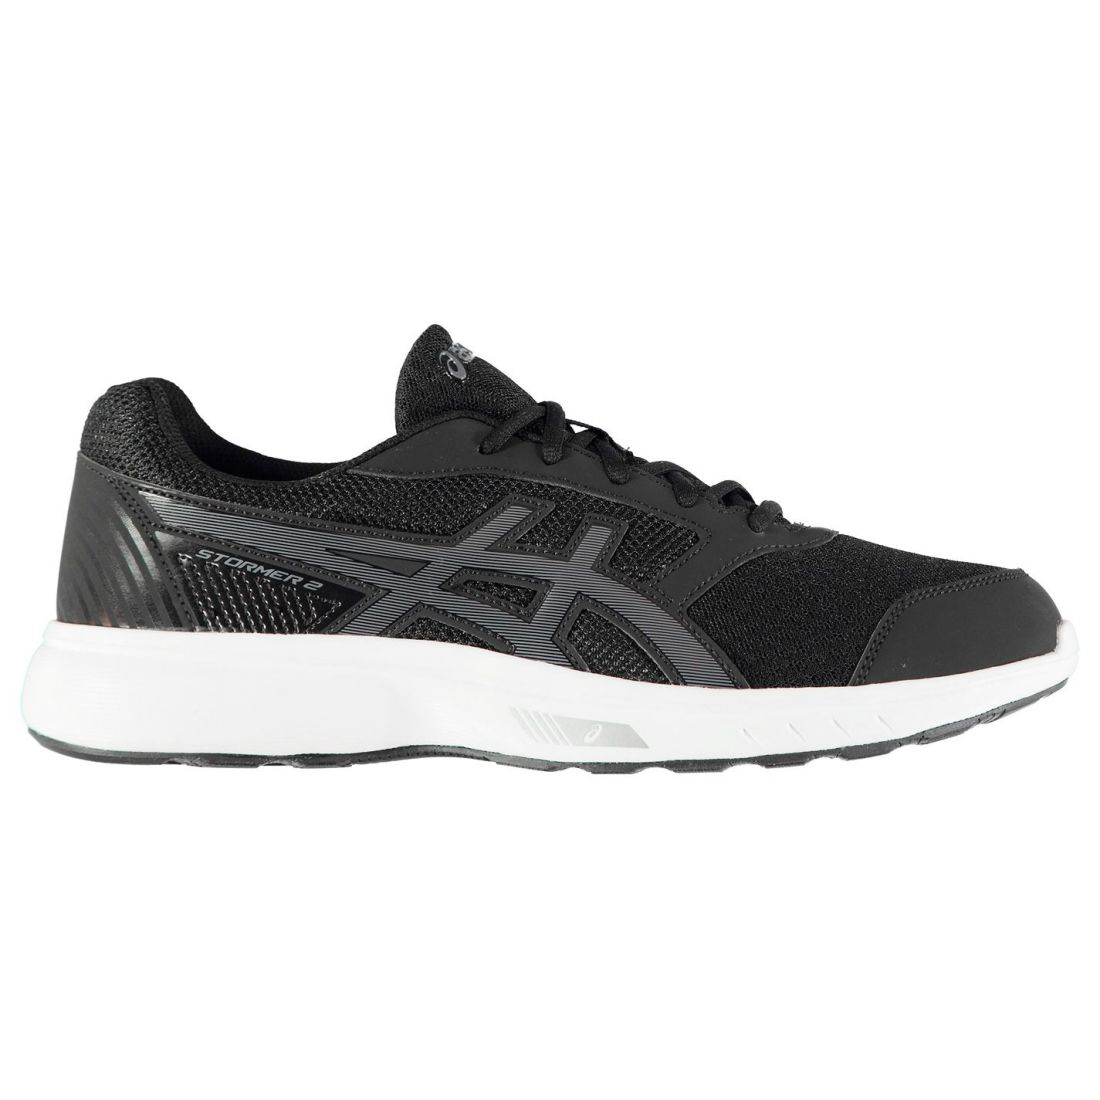 61a0c4e2d6a4 Asics Gel Stormer 2 Running Sneakers Mens Gents Nylon Runners Shoes ...